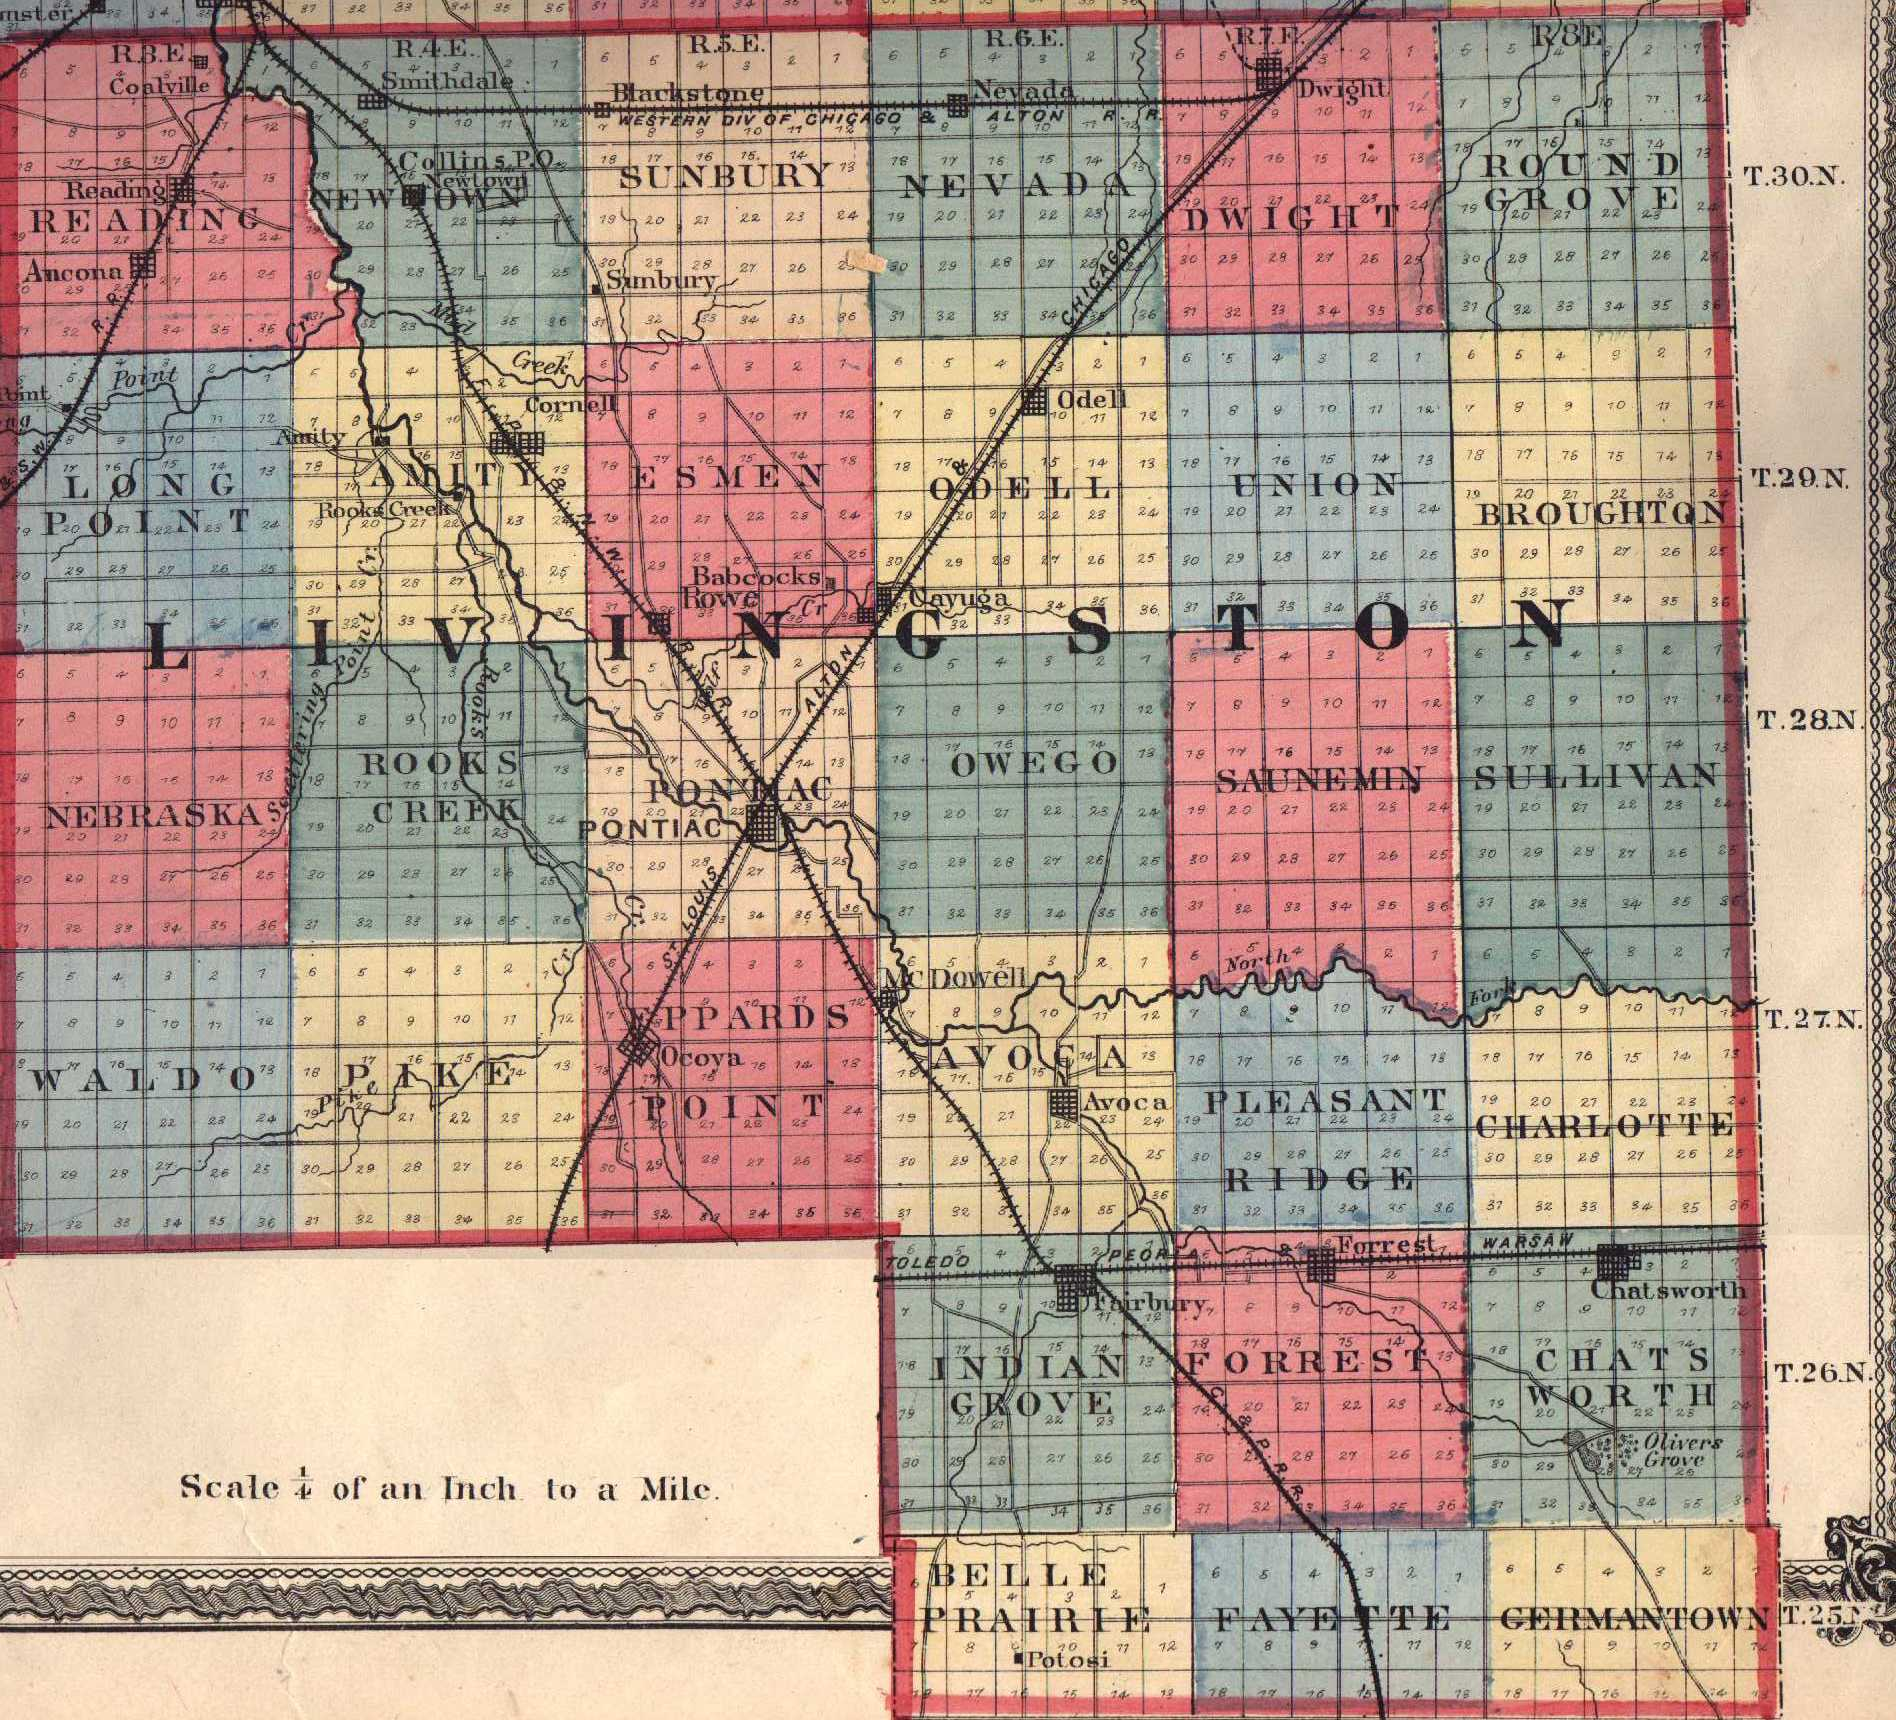 Livingston County Illinois Maps and Gazetteers